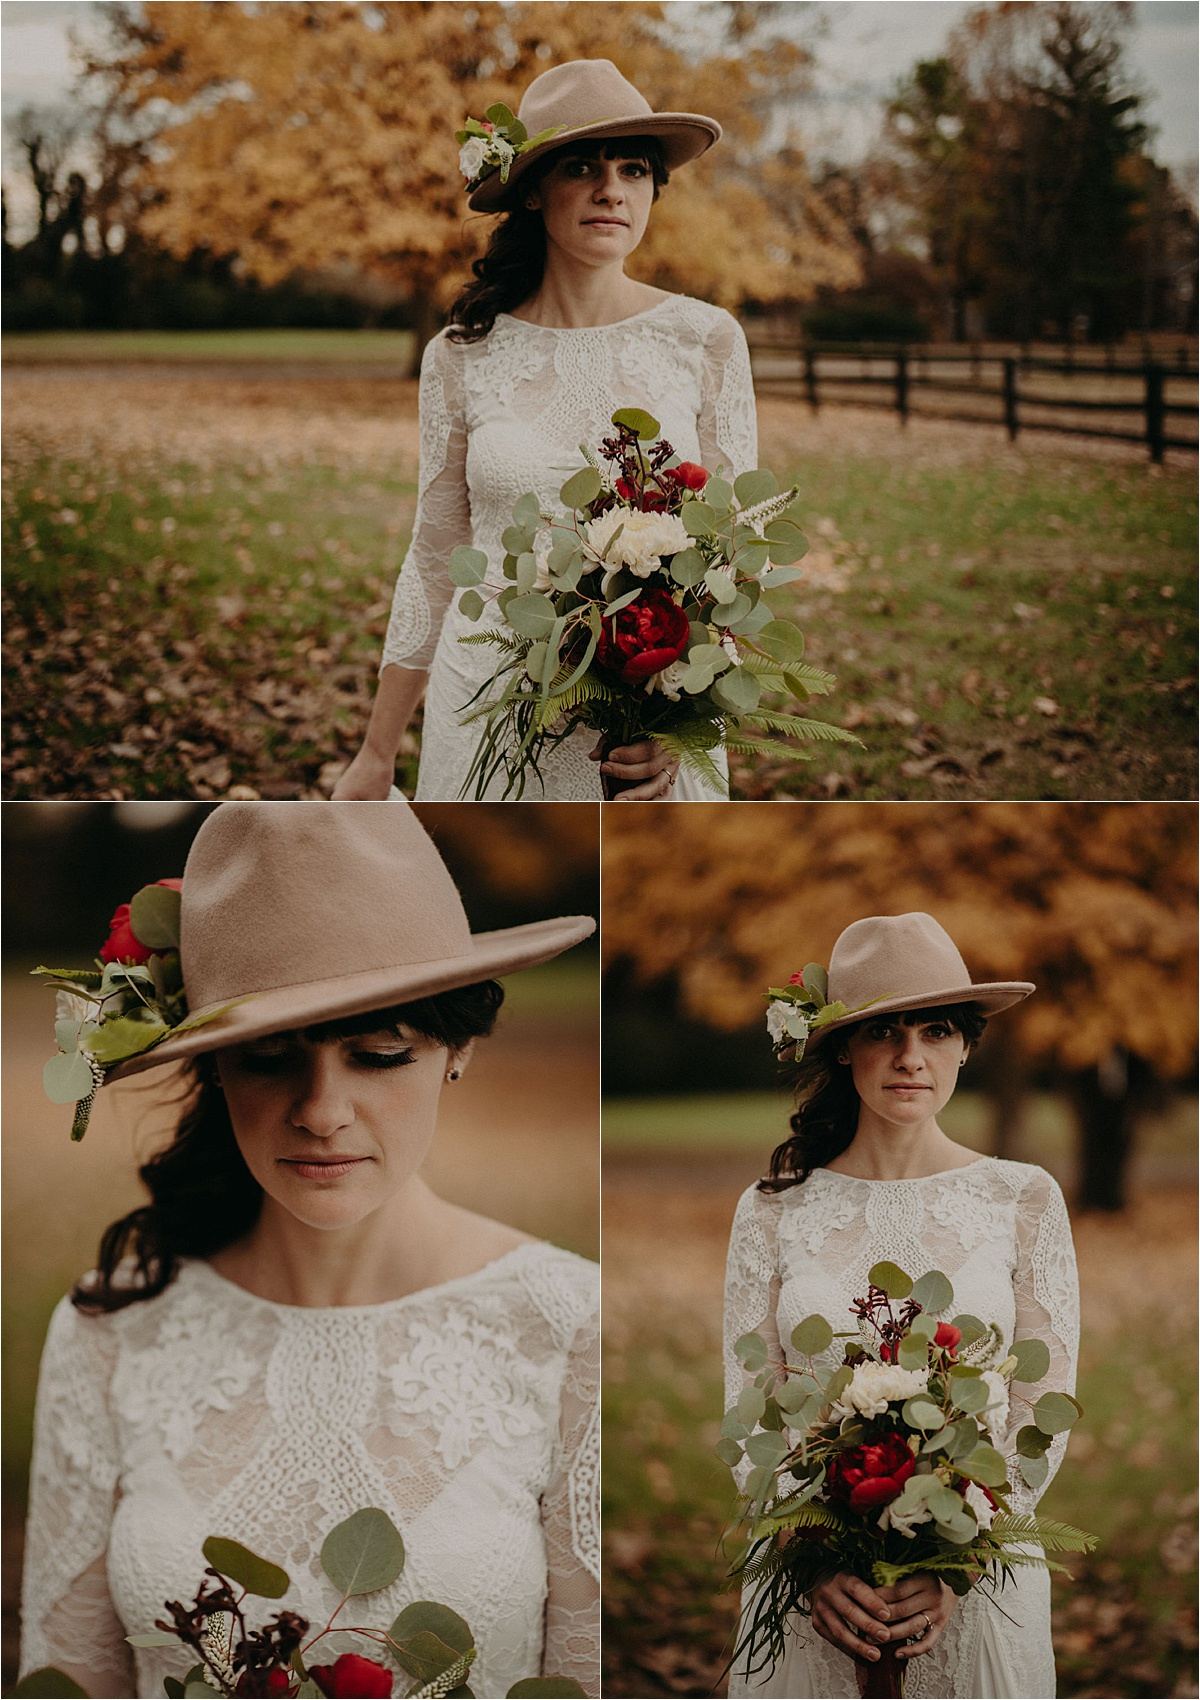 The bride wore a Grace Loves Lace gown a camel-colored hat with florals and touches of deep burgundy at this fall wedding at Barn in the Bend in Nashville, Tennessee